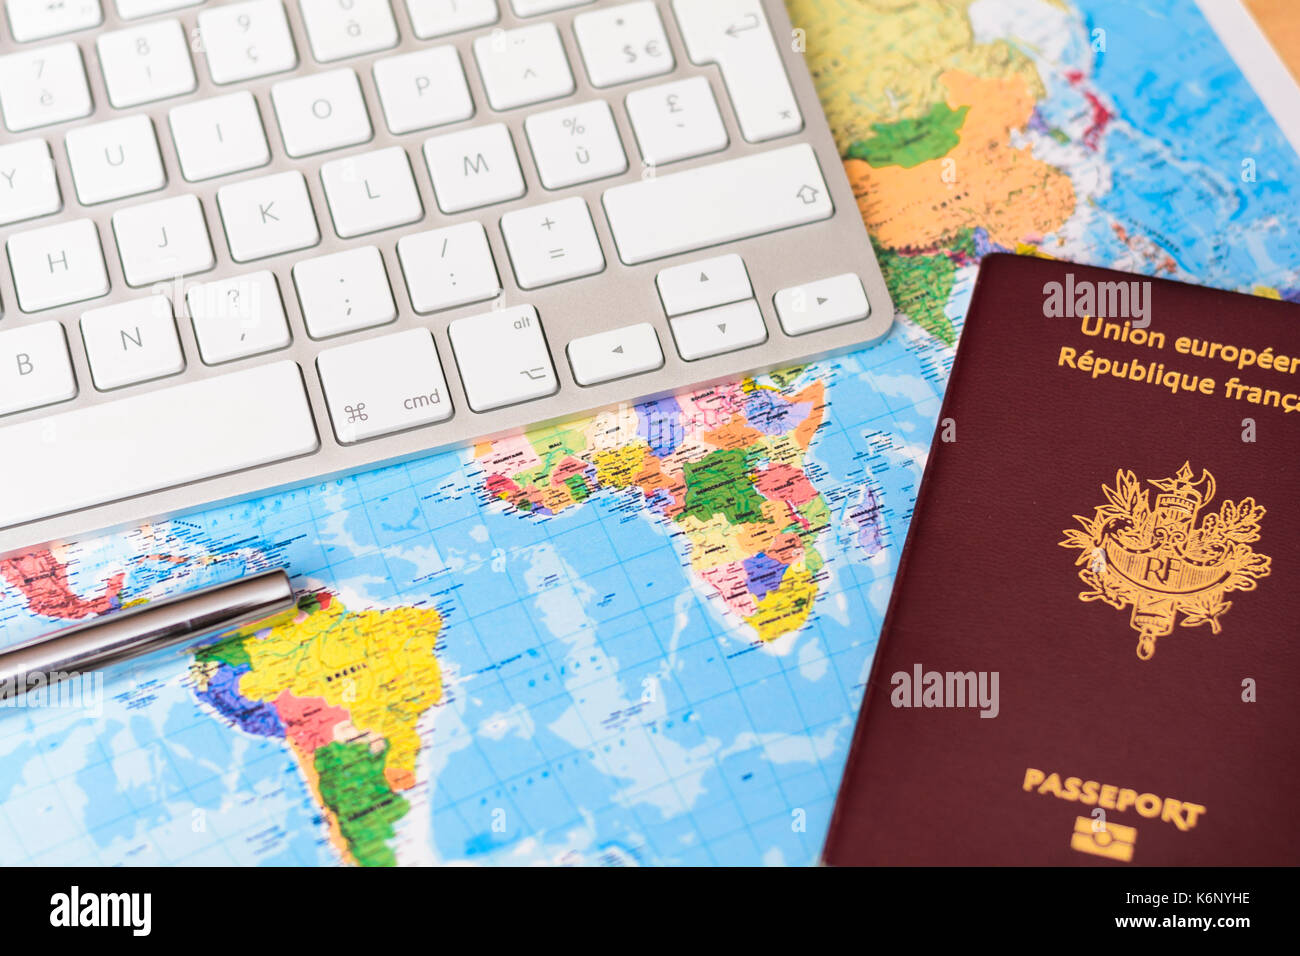 Worlds map with keyboard passport and pen stock photo 159063898 worlds map with keyboard passport and pen gumiabroncs Gallery